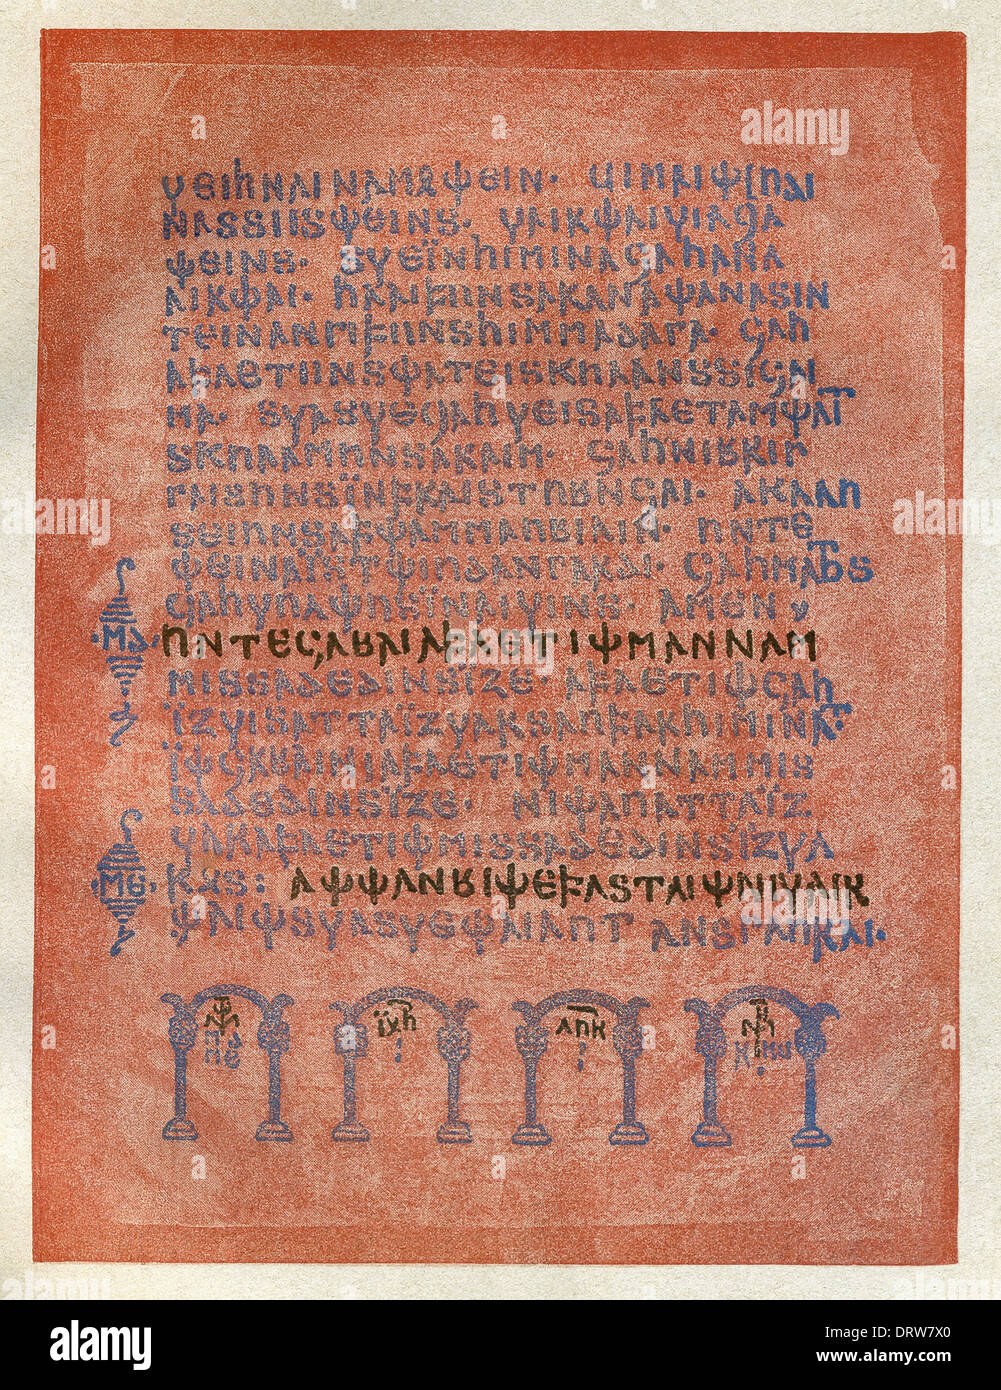 A copy of a page of the Codex Argenteus on exhibit at the Carolina Rediviva Libaray at the University of Upsala in Sweden - Stock Image